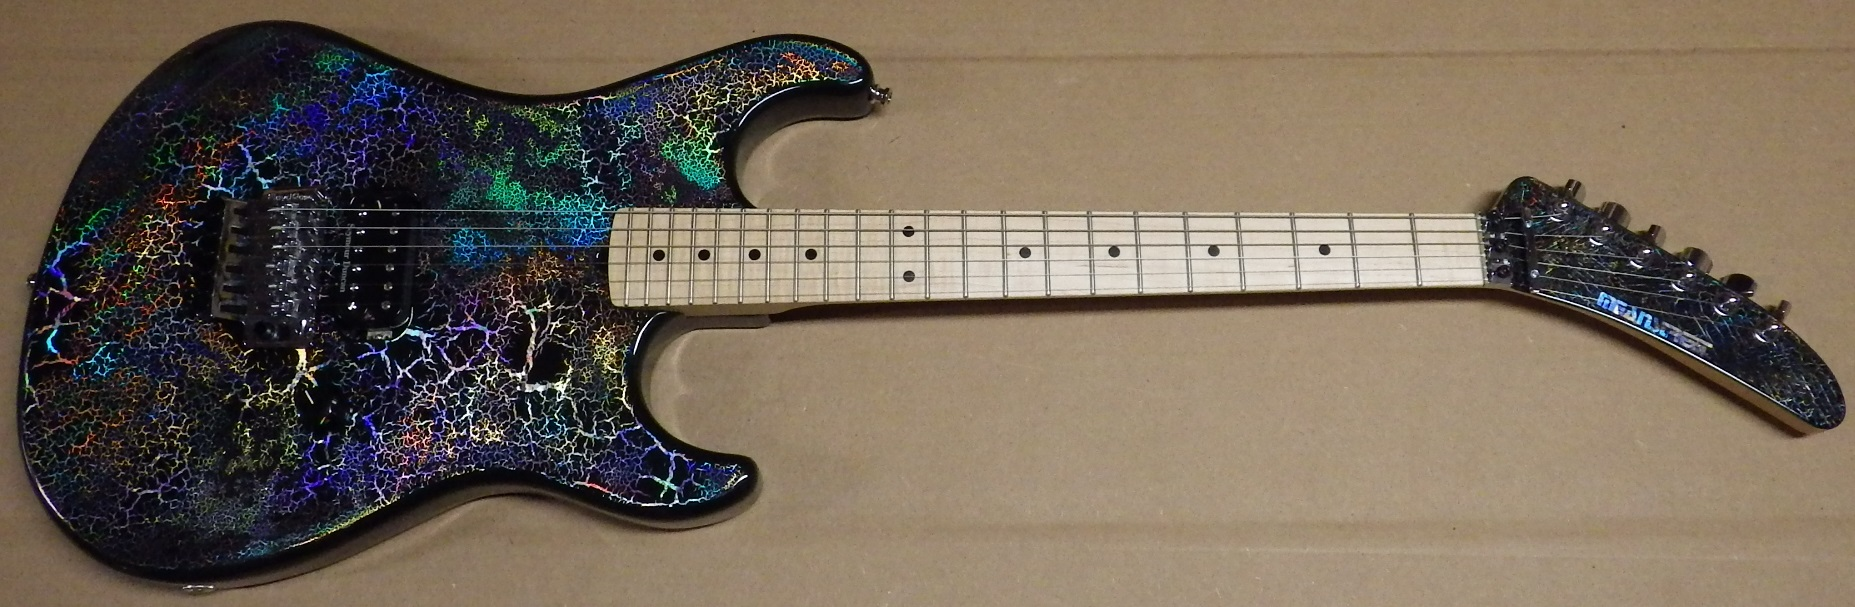 Mean Street Unchained Tour Model (Holocrackle420)  with wicked Holocrackle paint job and matching headstock, Poplar body, light flame 1 piece rock maple neck, R2 nut, 22 medium jumbo frets, Original Floyd Rose tremolo, Seymour Duncan TB14 Custom 5 pickup, Gotoh tuners, strap locks, CTS pot, Switchcraft jack...comes with Gator case. $1795 plus shipping (SOLD)